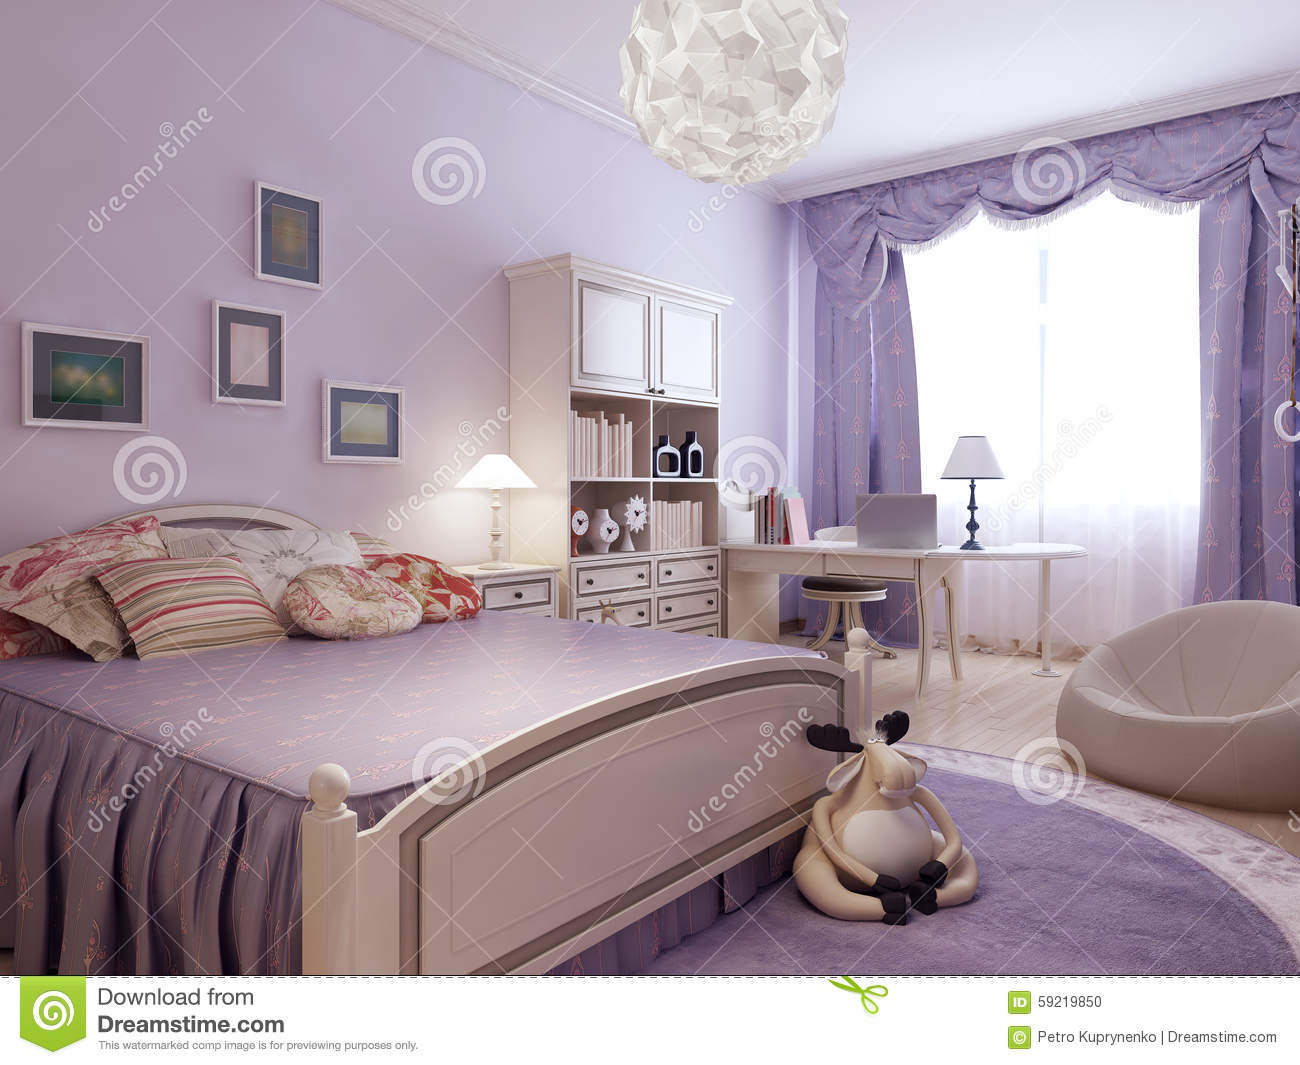 Chambres d'adolescents nov